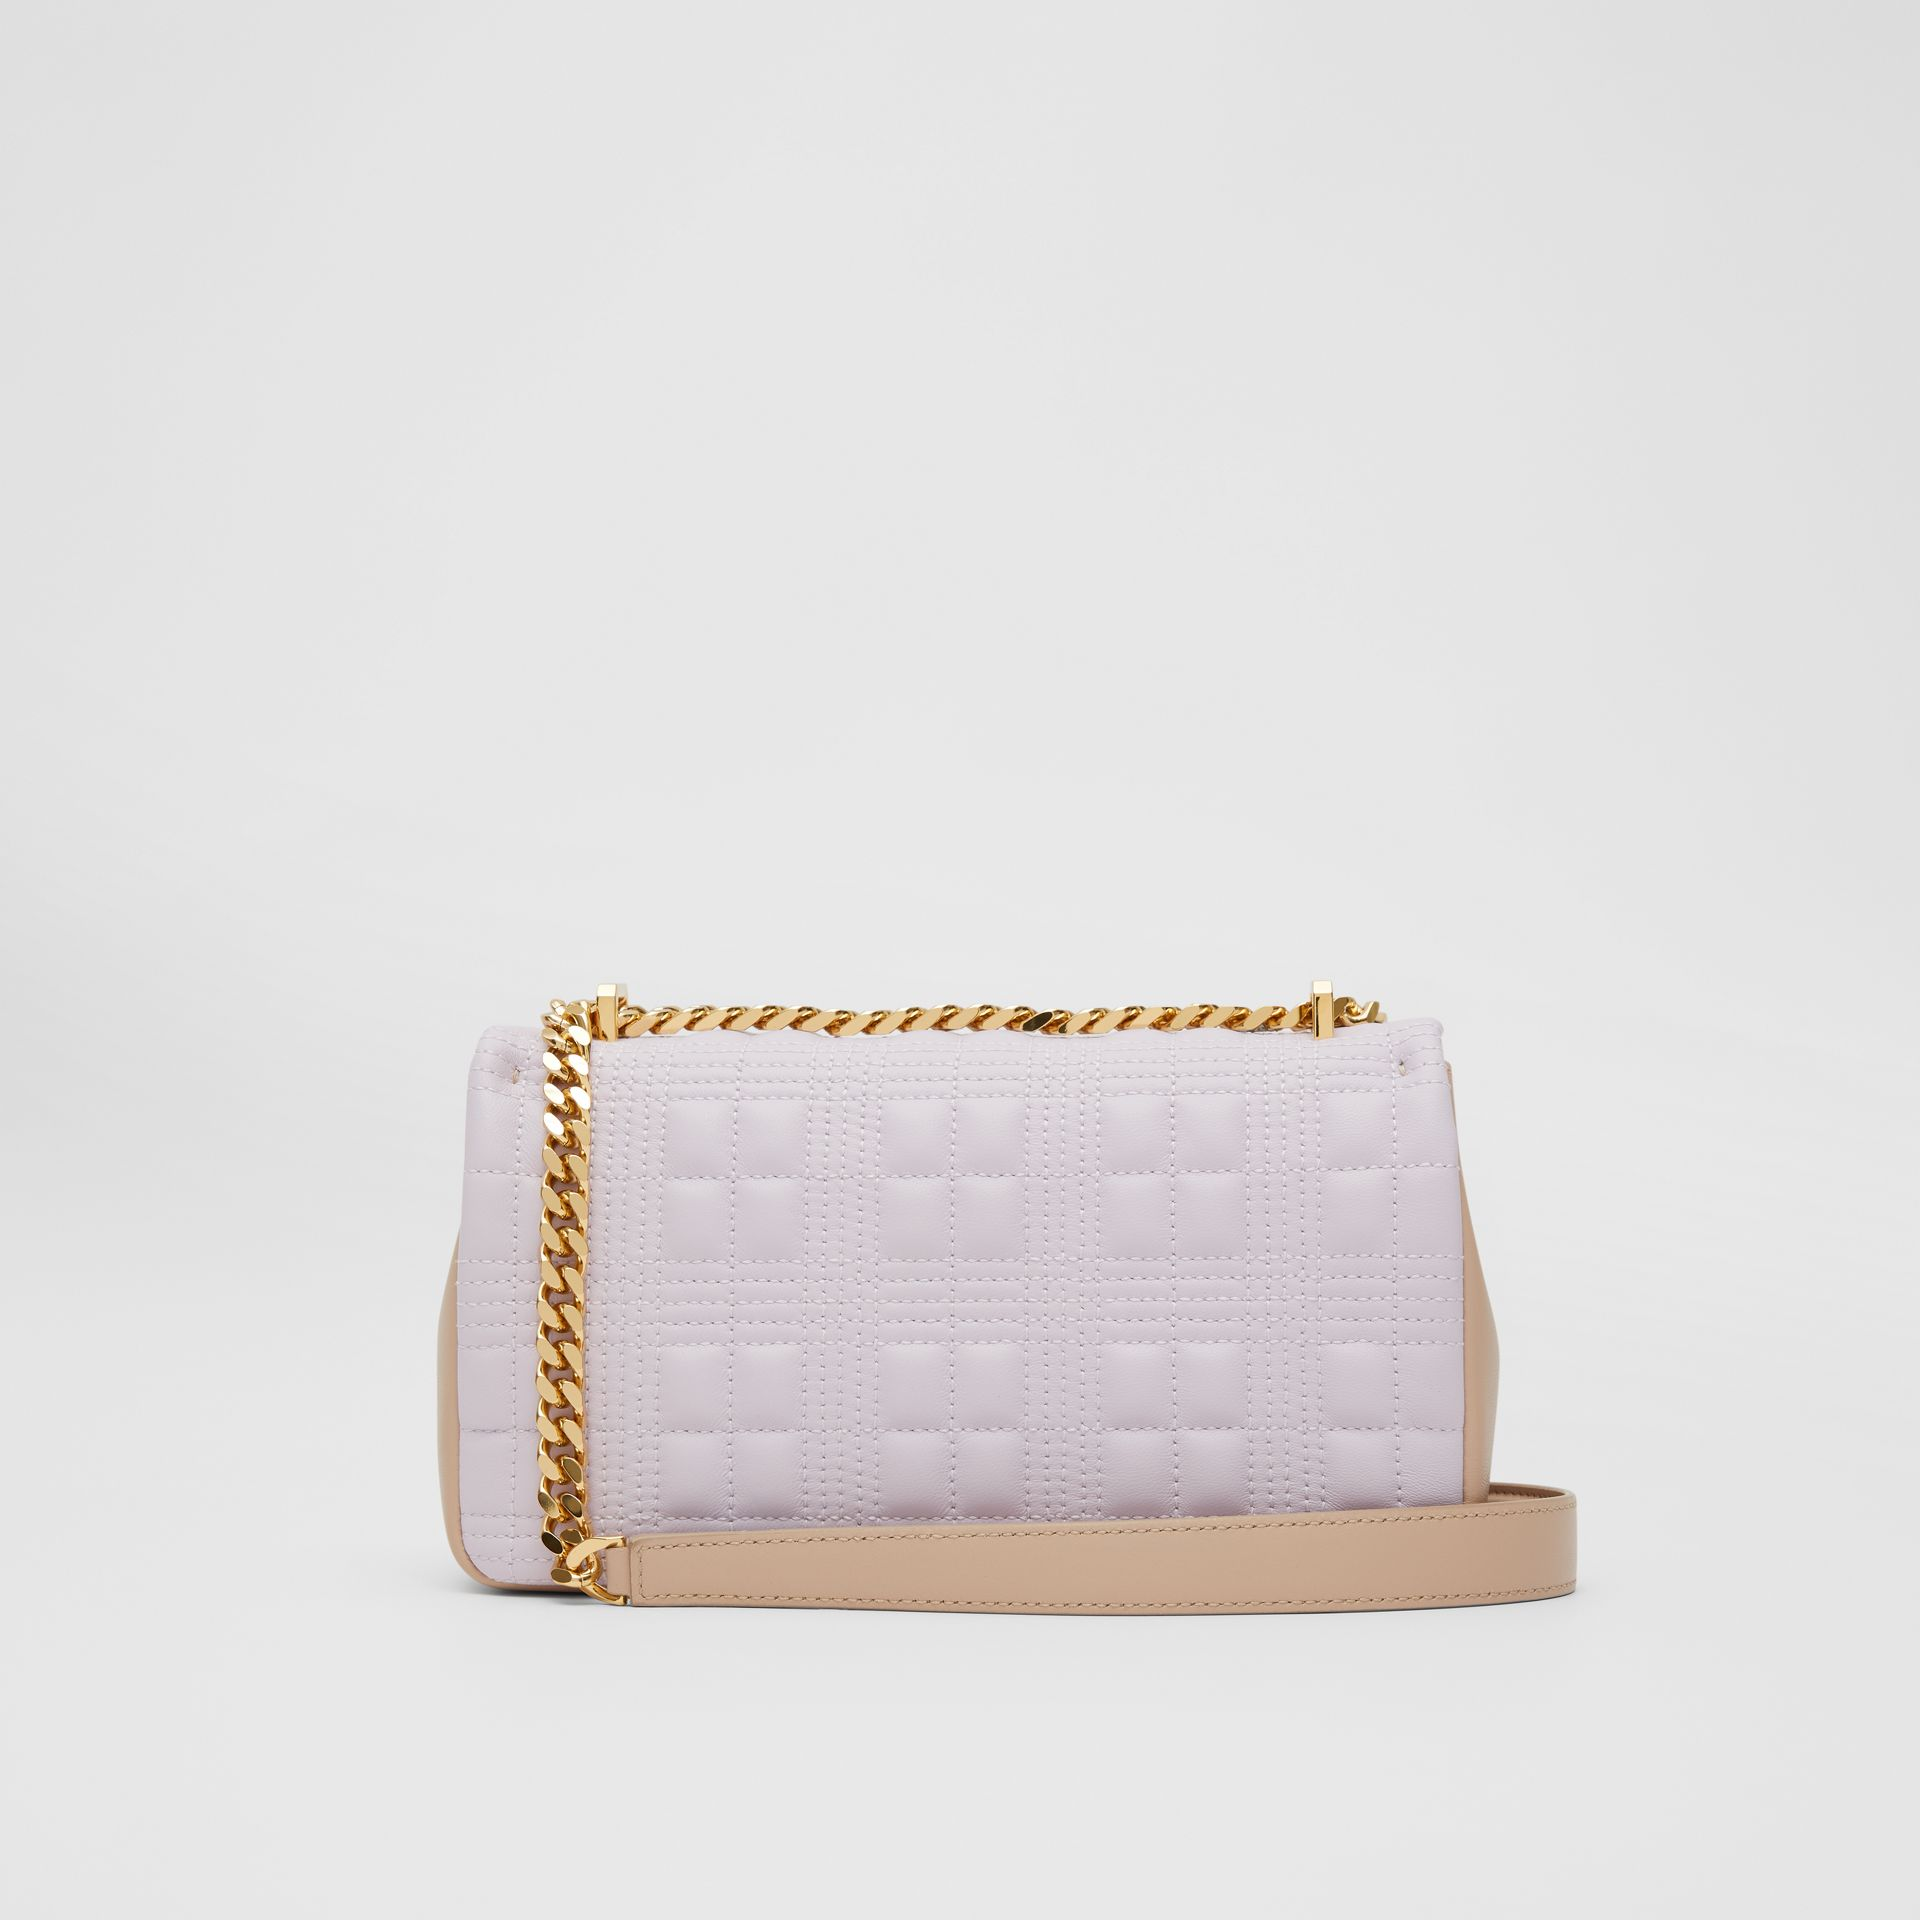 Small Quilted Two-tone Lambskin Lola Bag in Pale Thistle/soft Fawn - Women | Burberry - gallery image 7